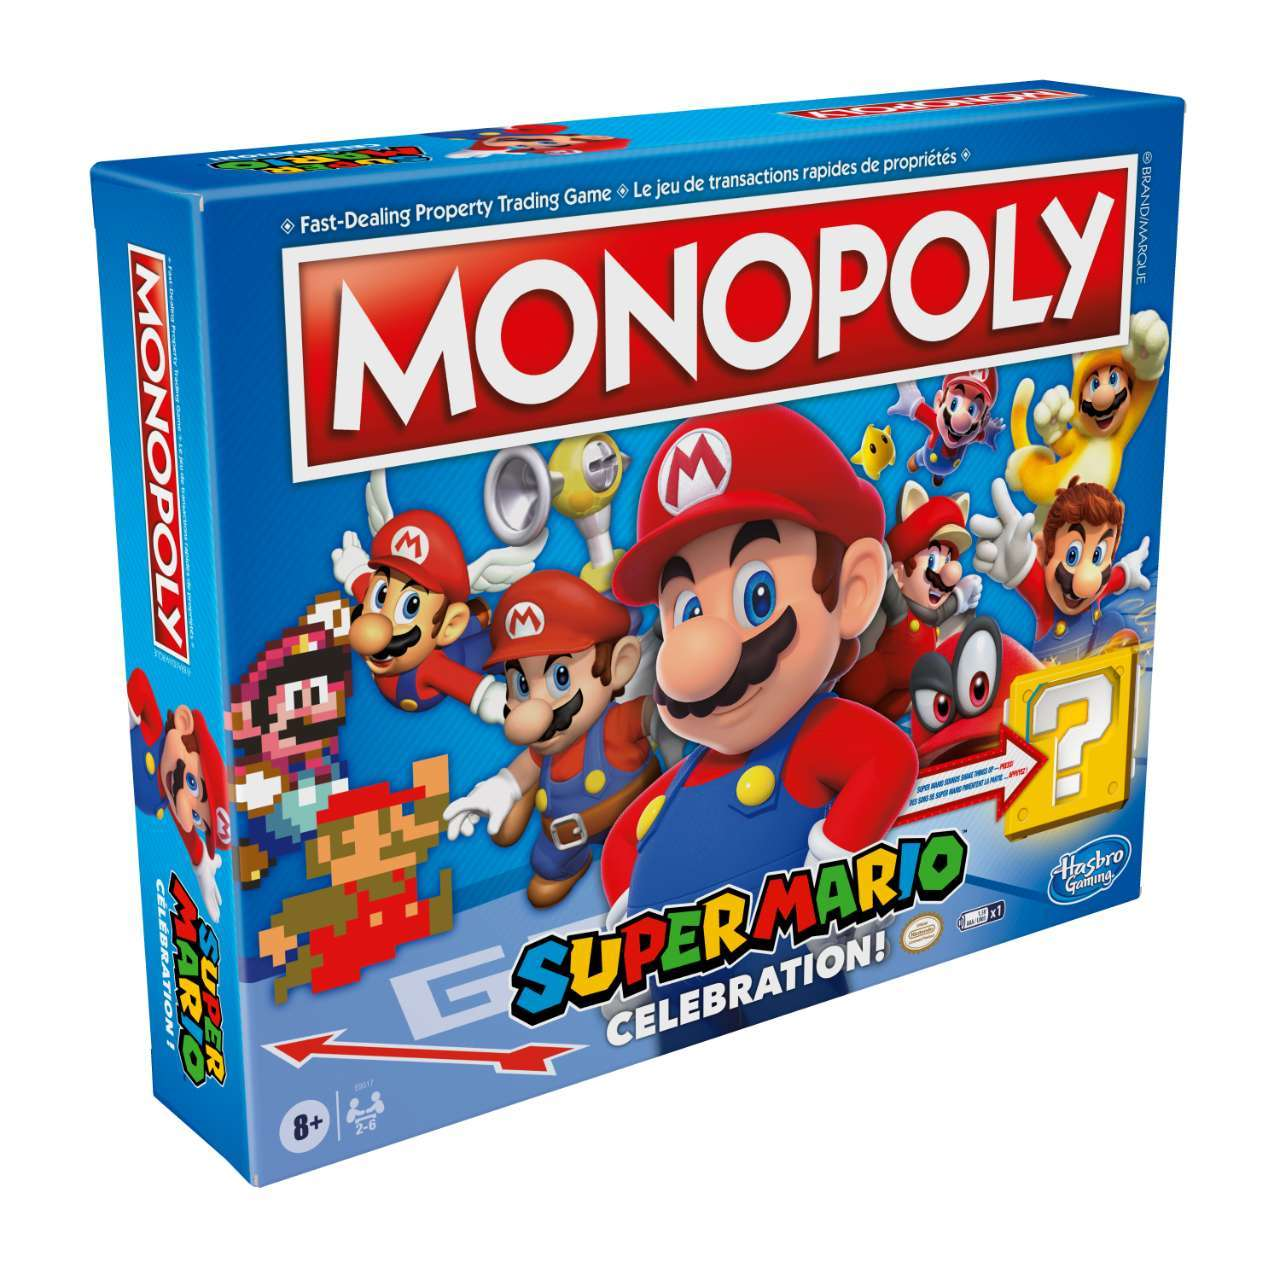 Monopoly Super Mario Celebration Edition_ Packaging